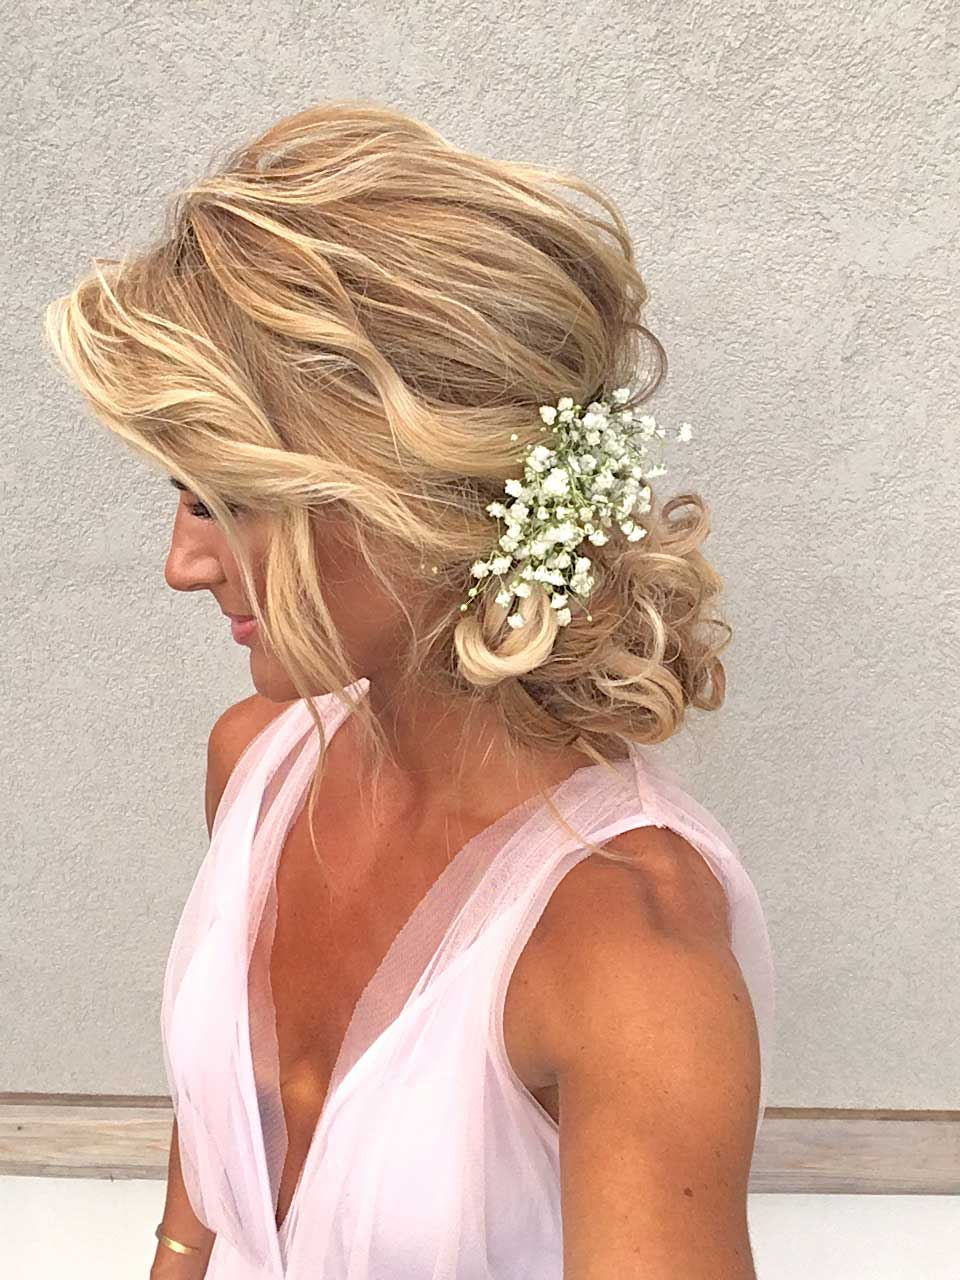 The Beautiful Co. Salon Bridal Hair